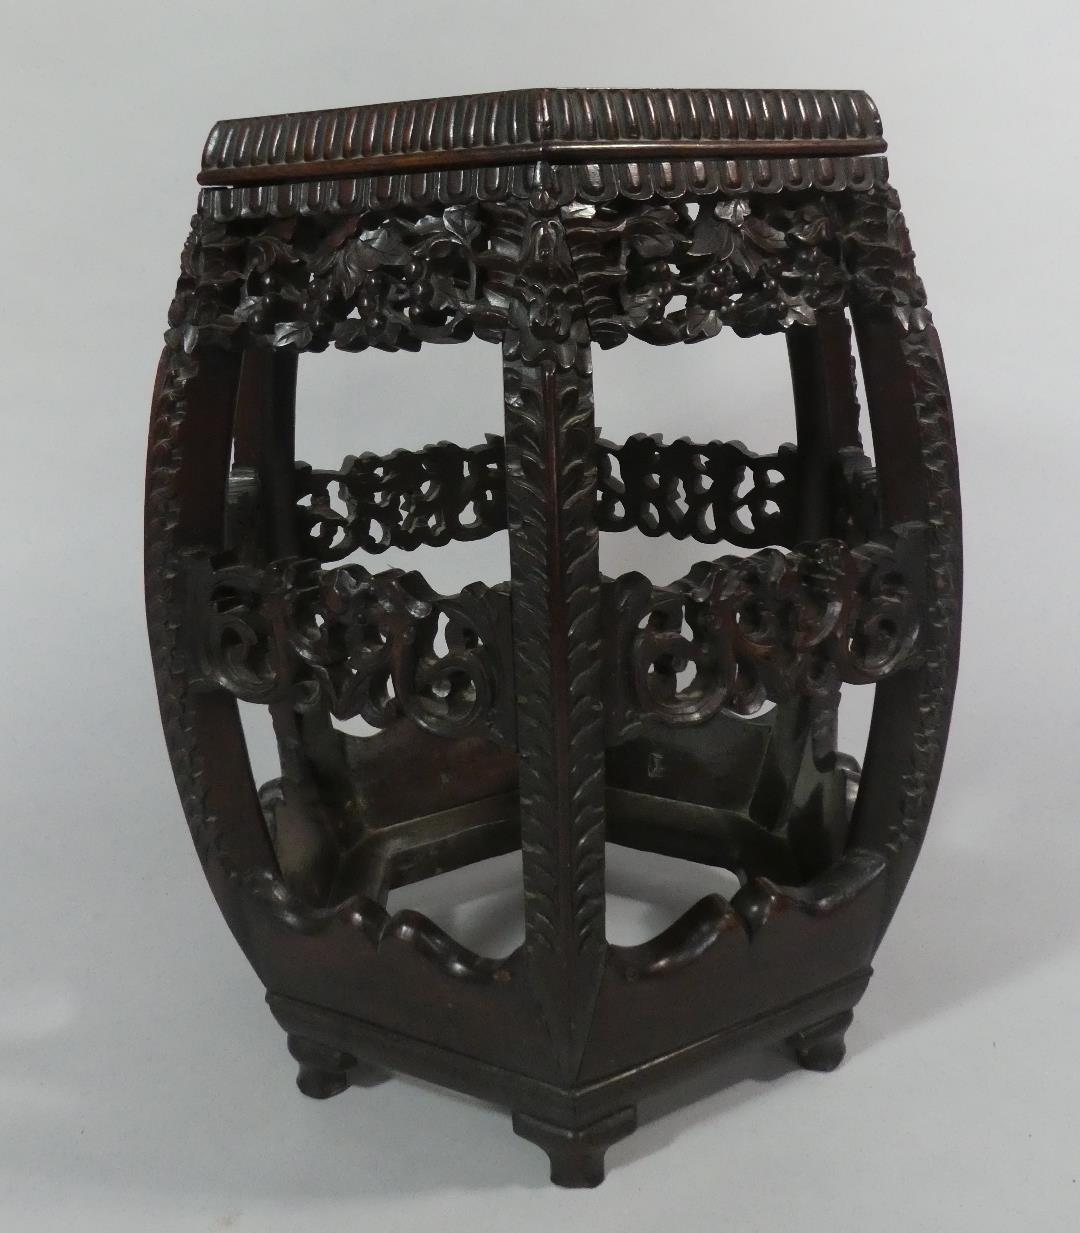 Lot 54 - A Chinese Hardwood Vase Stand of Hexagonal Form with Inset Marble Top. Carved, Moulded and Pierced